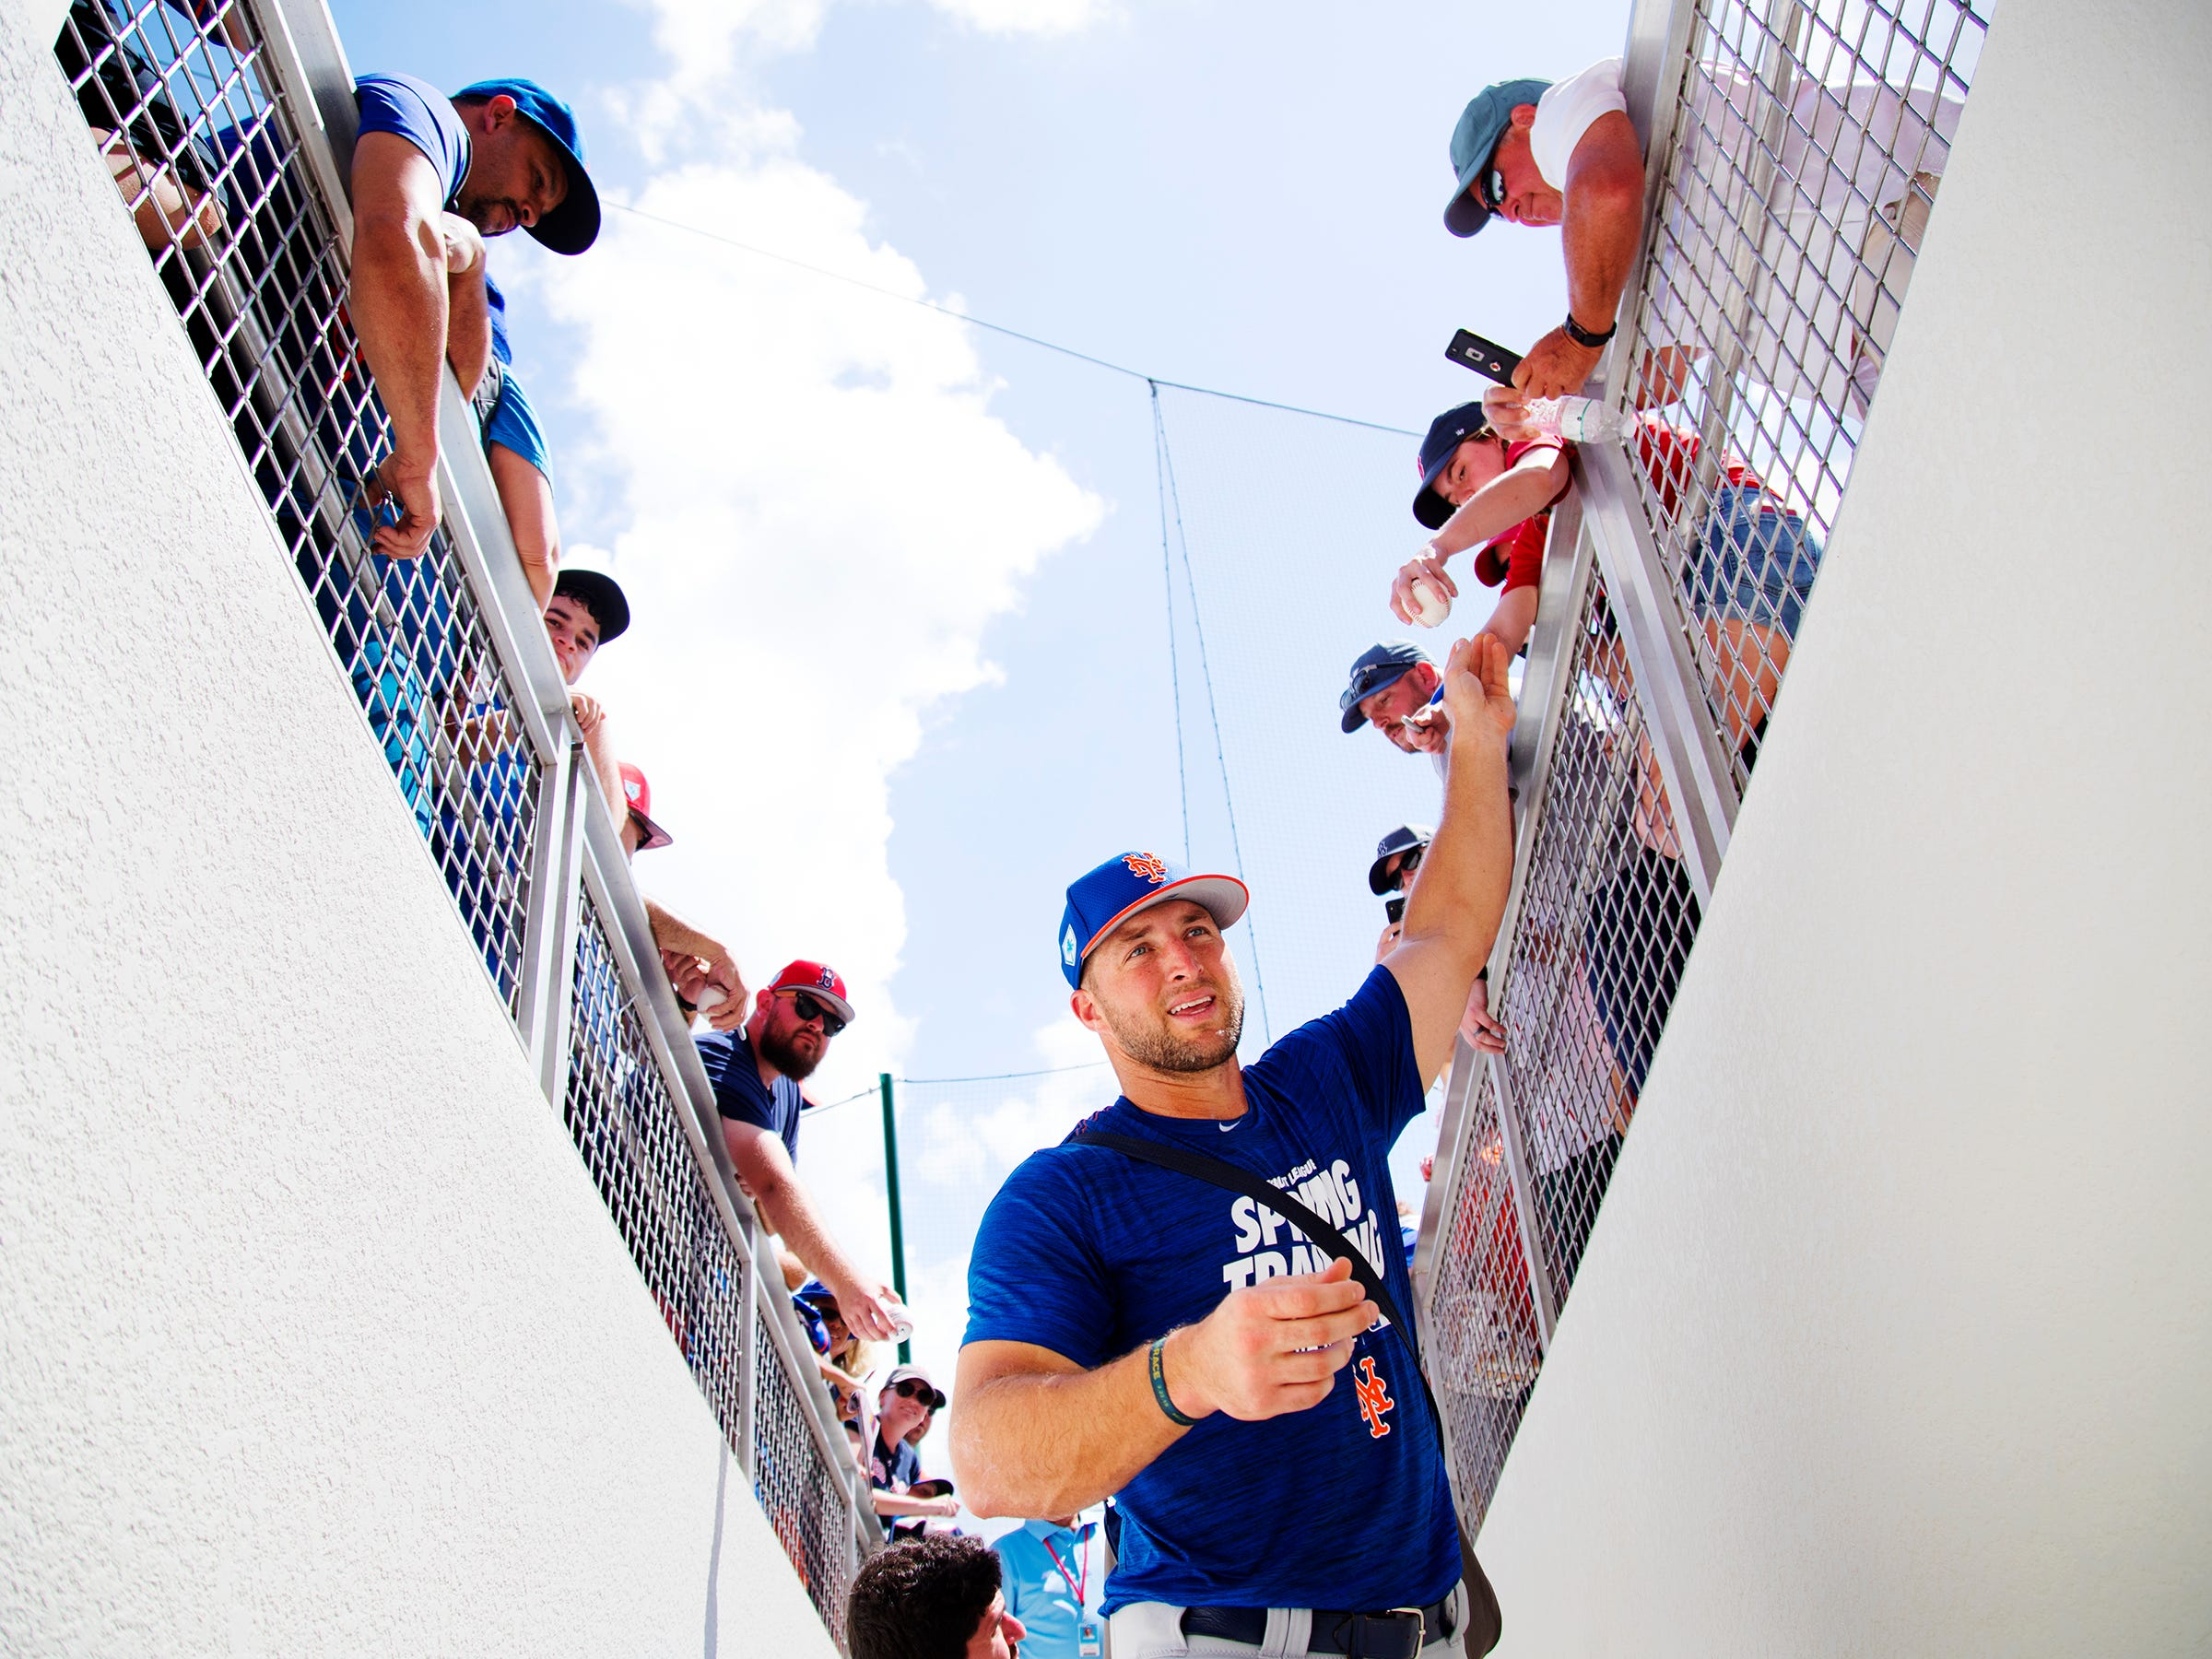 New York Mets' Tim Tebow greets fans before playing the Boston Red Sox on Saturday, March 9, 2019 at JetBlue Park in Fort Myers.